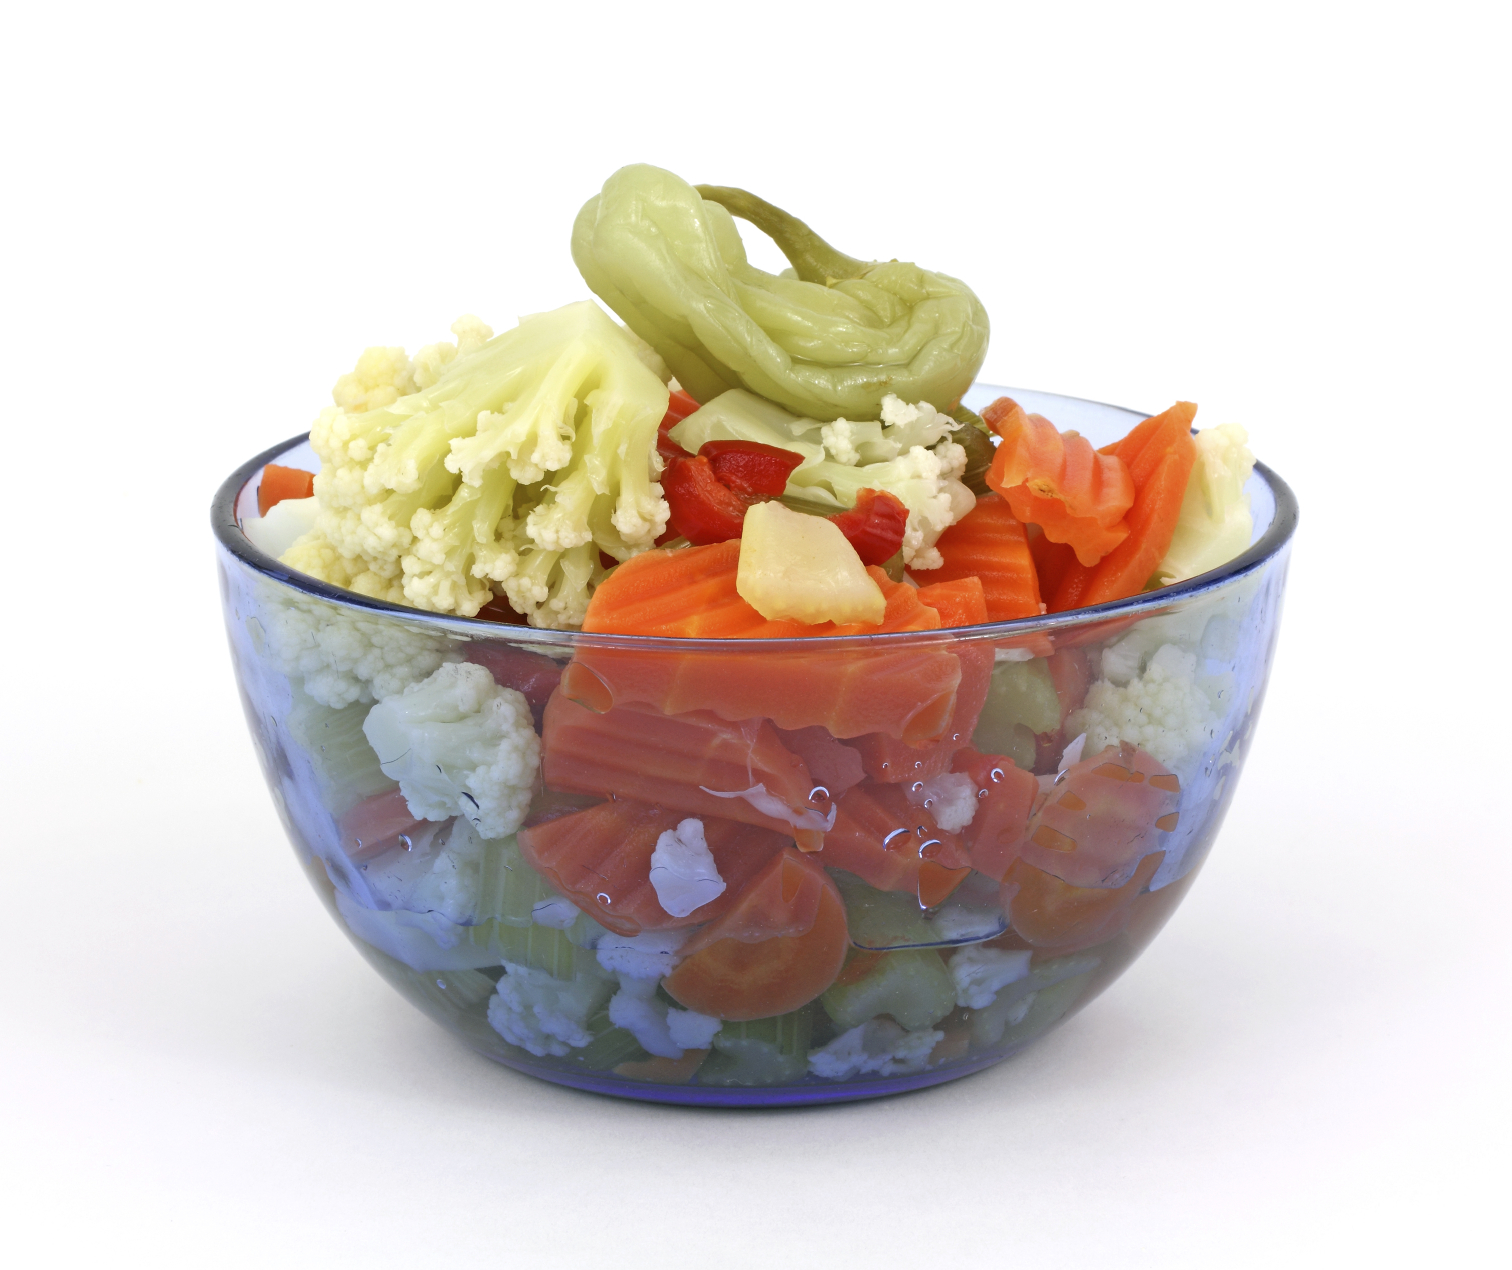 Recipe Pickled vegetables (giardiniera)